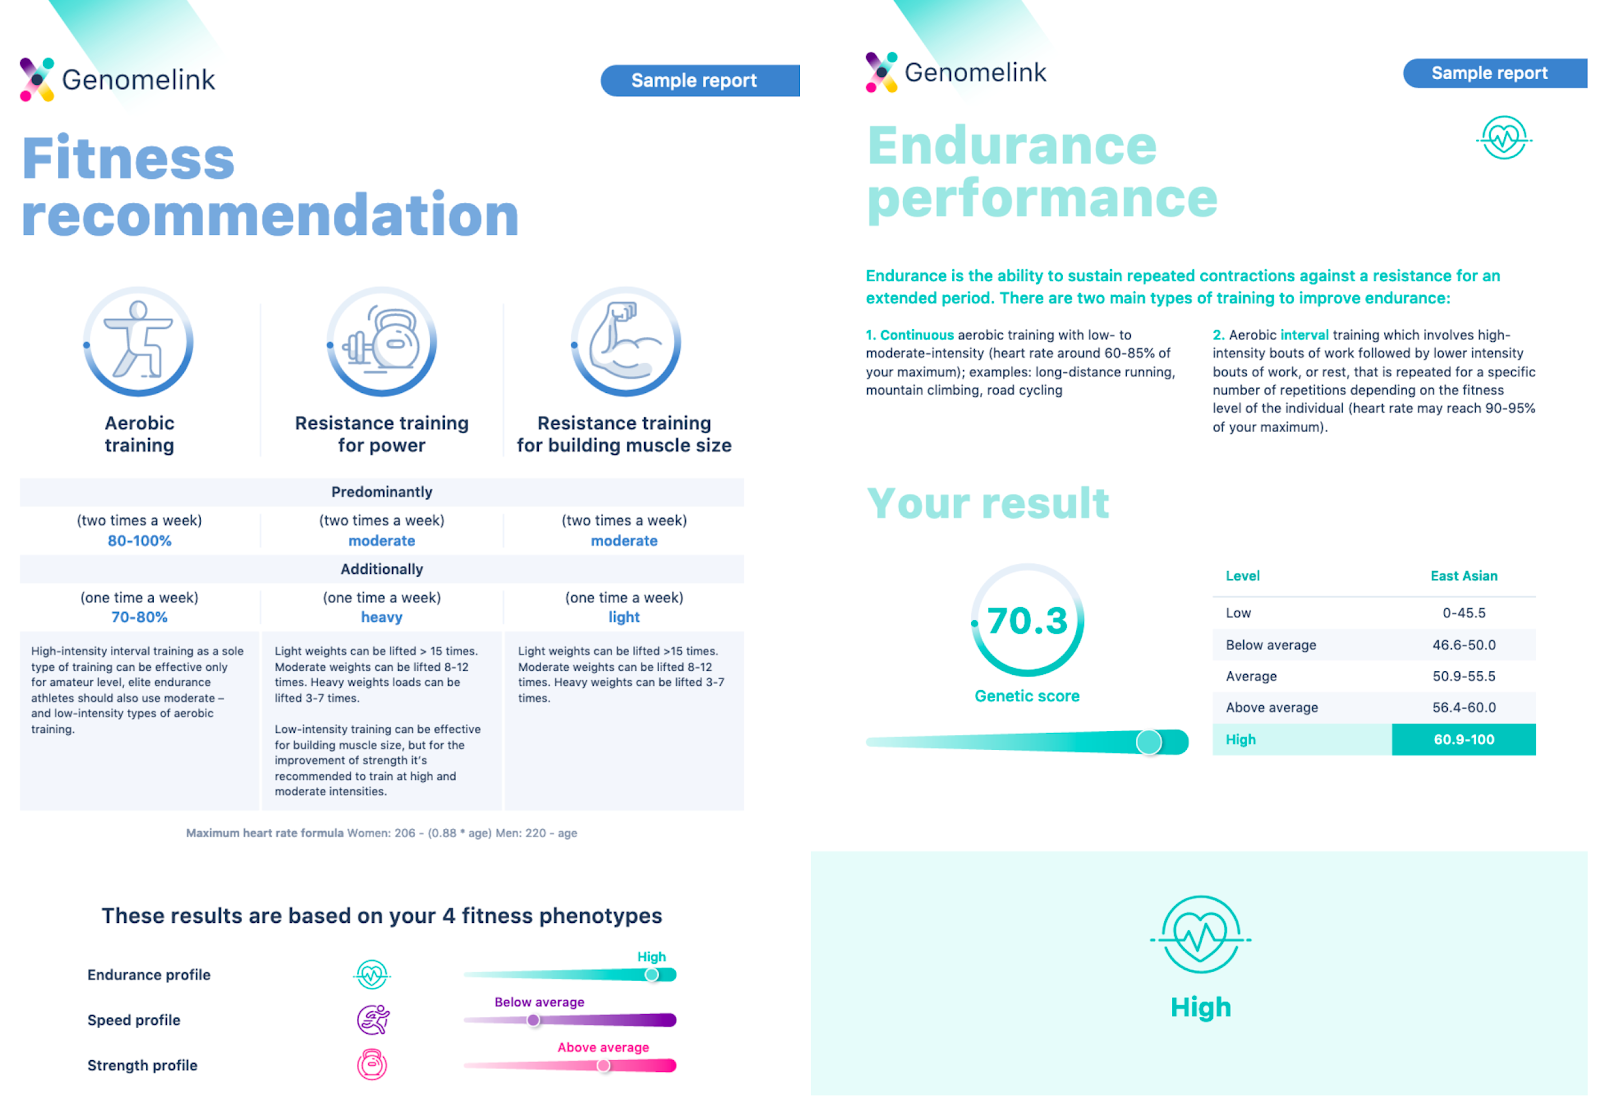 Genomelink Personalized Fitness Report.